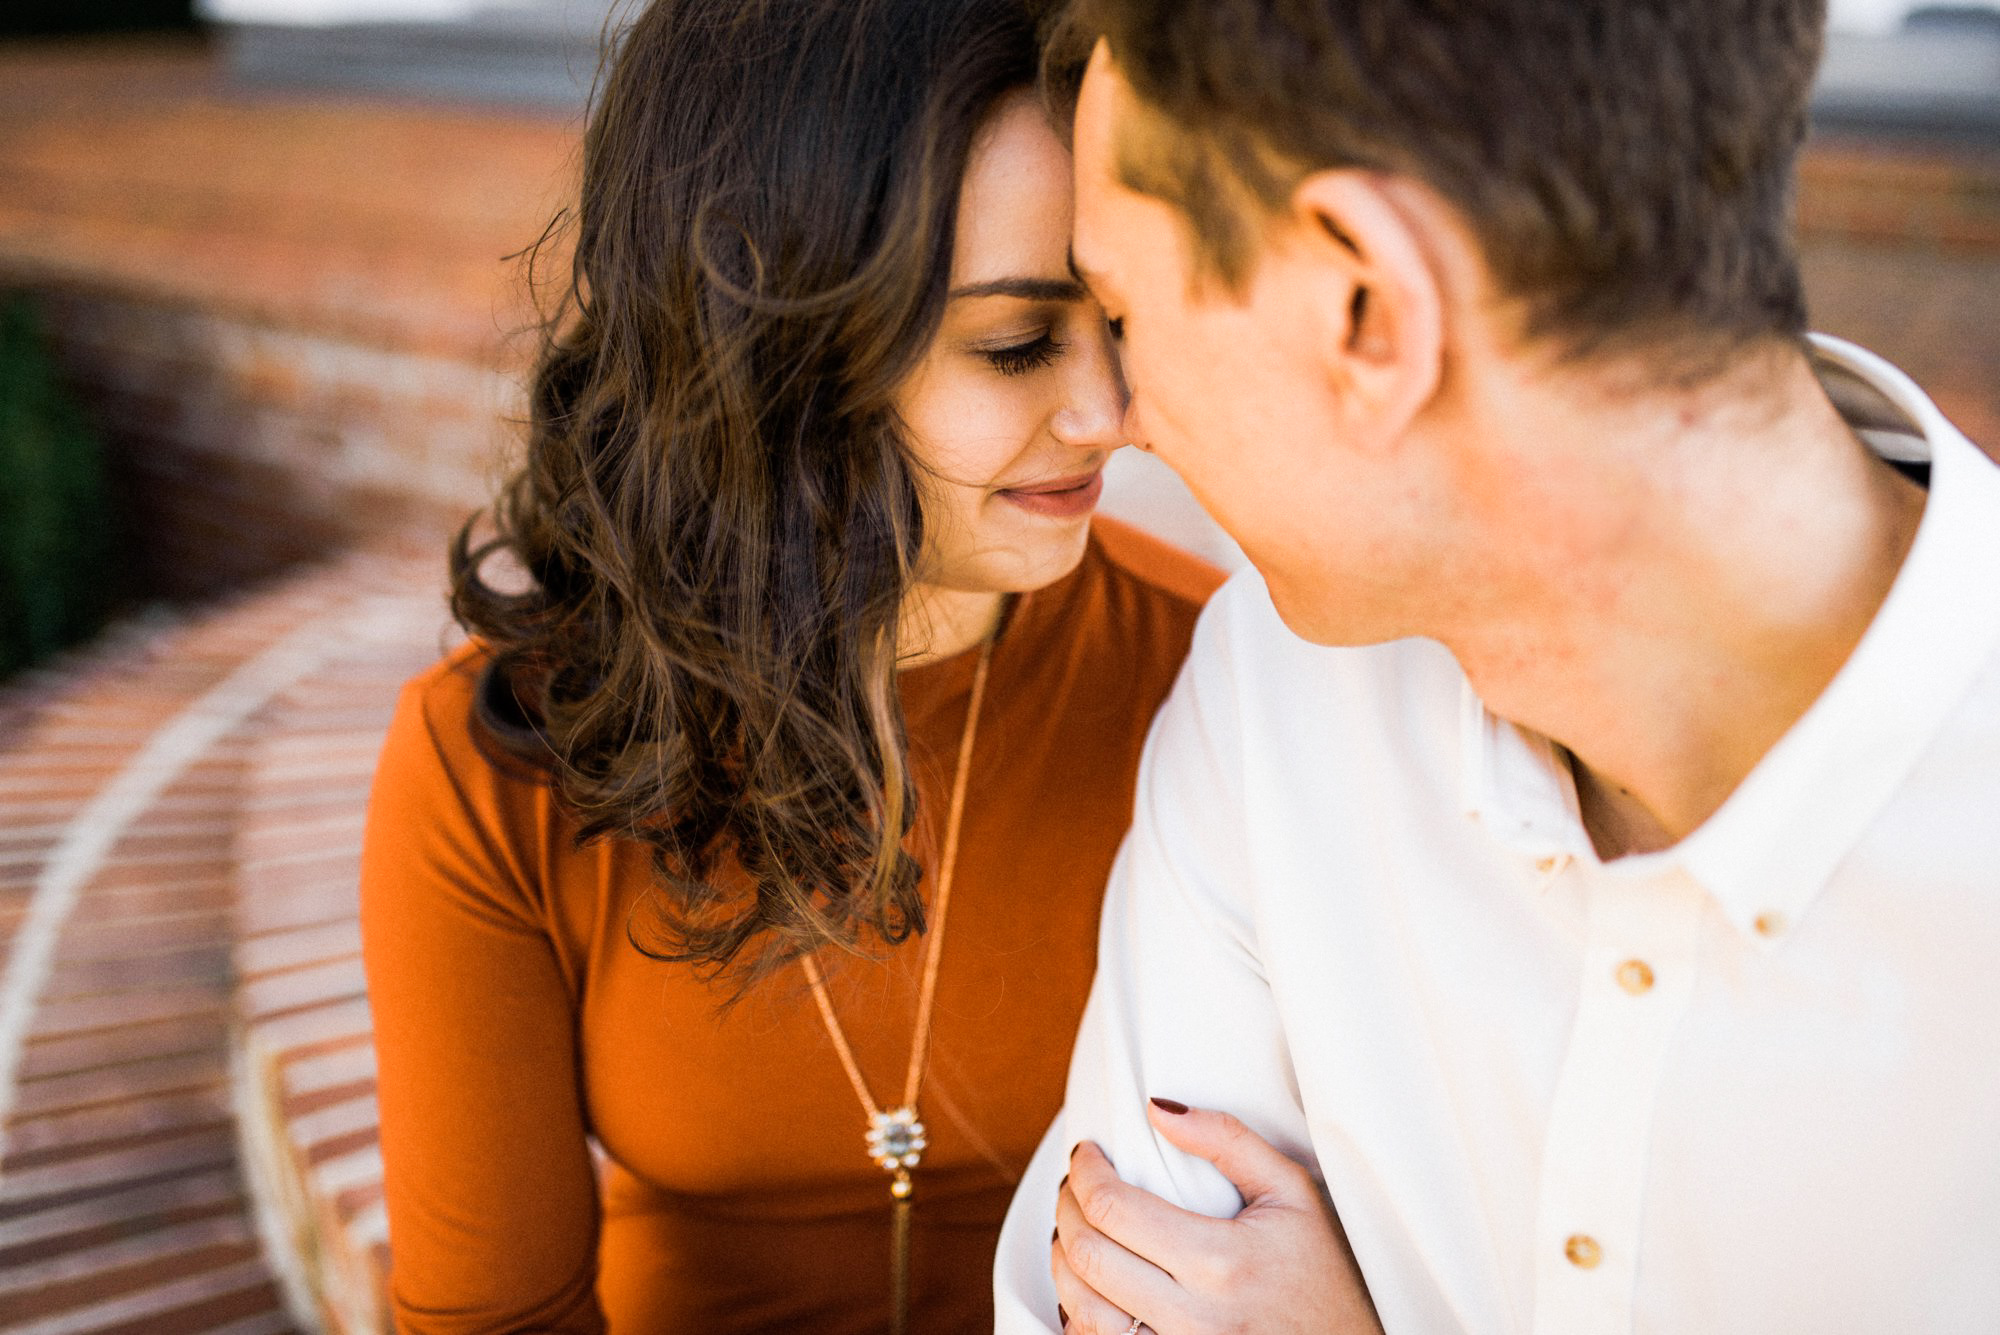 engagement-photography-88-love-stories_0008.jpg